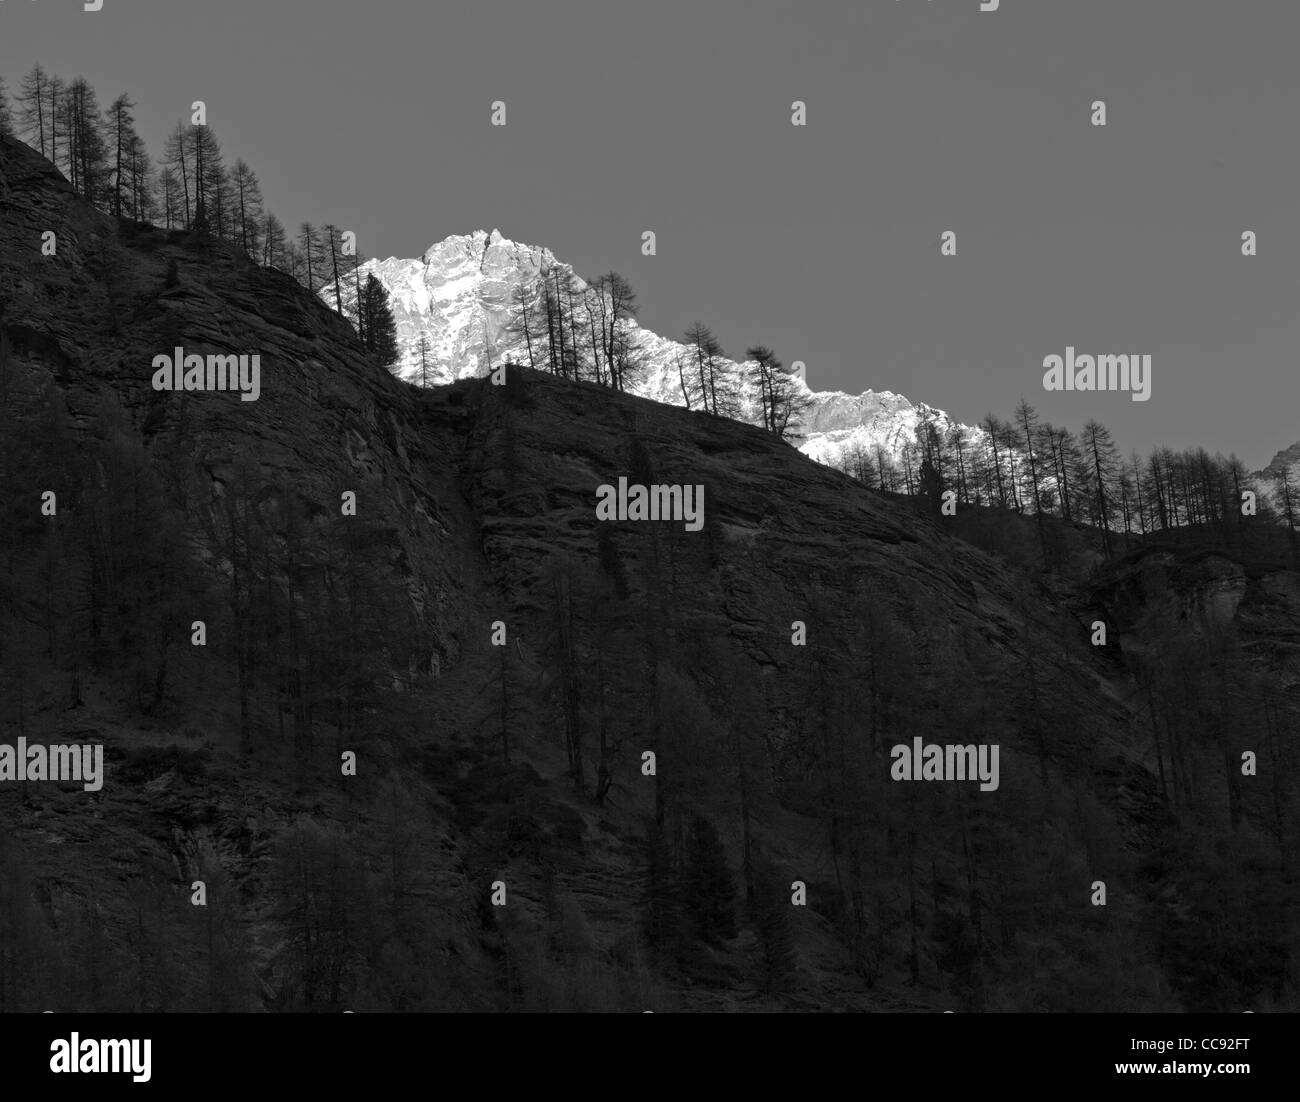 alpenglow reddish glow of a high mountain at sunset near Zinal in black and white - Stock Image